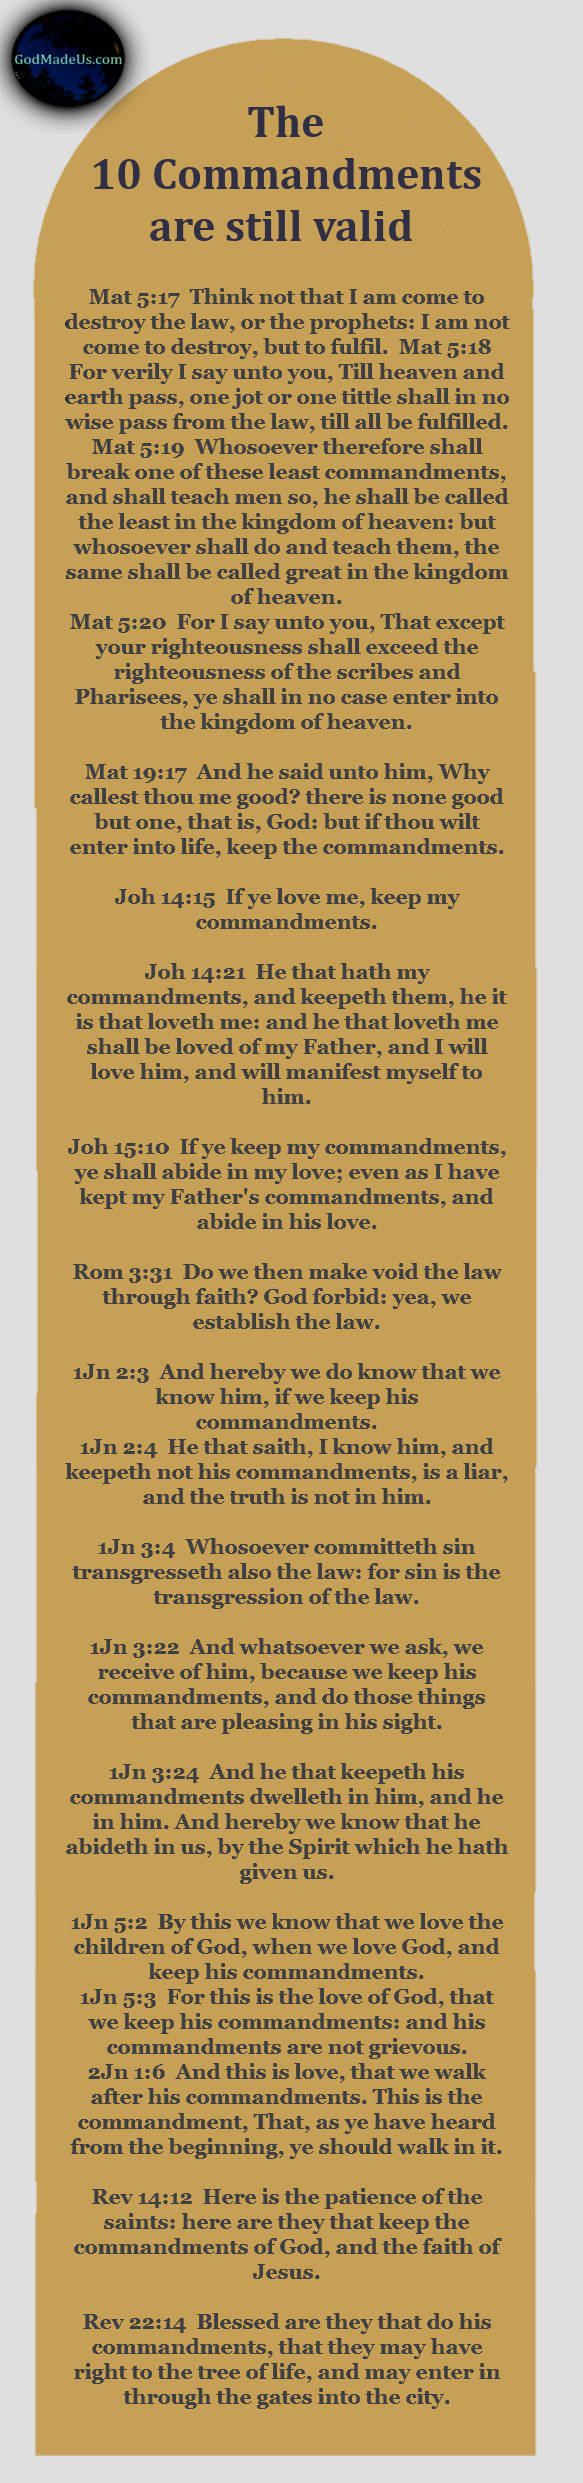 Image showing the verses which tell us the 10 commandments are still valid.